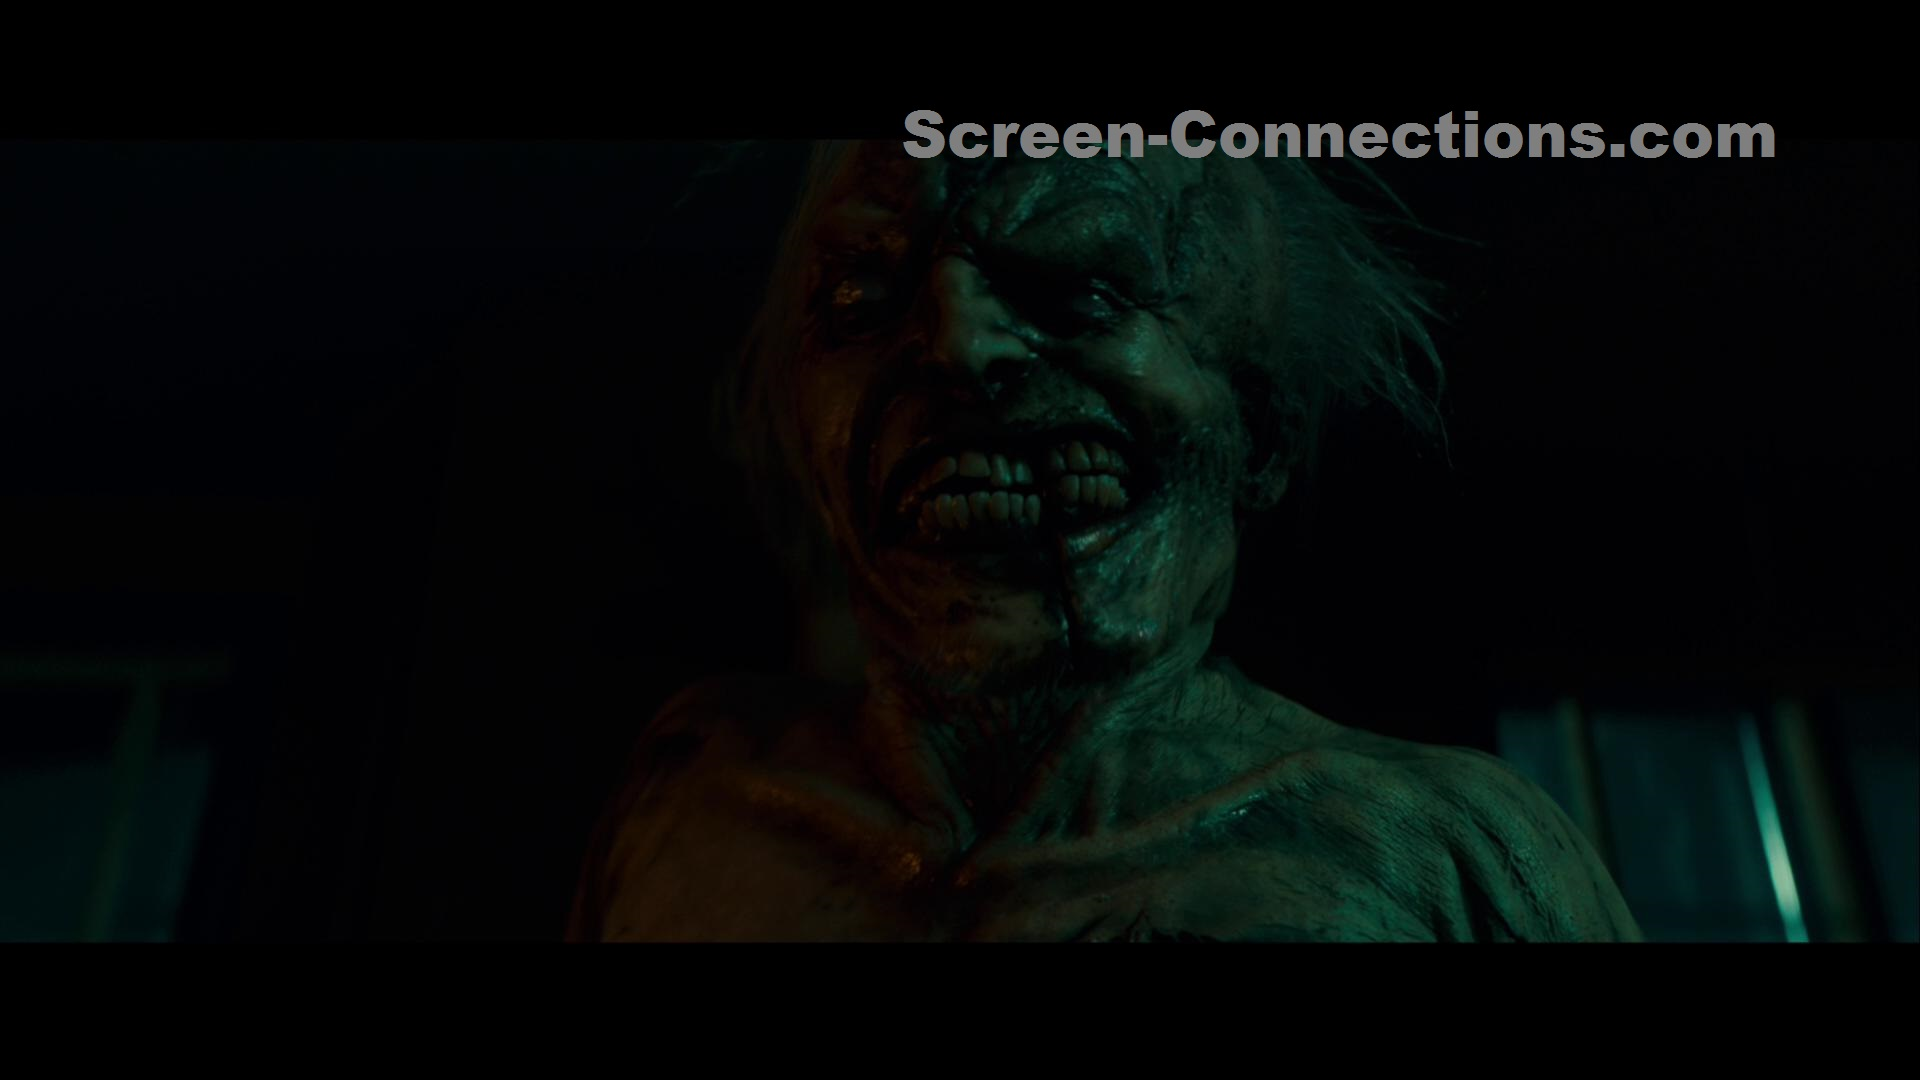 Scary Stories To Tell In The Dark 2019 Blu Ray Image 06 Screen